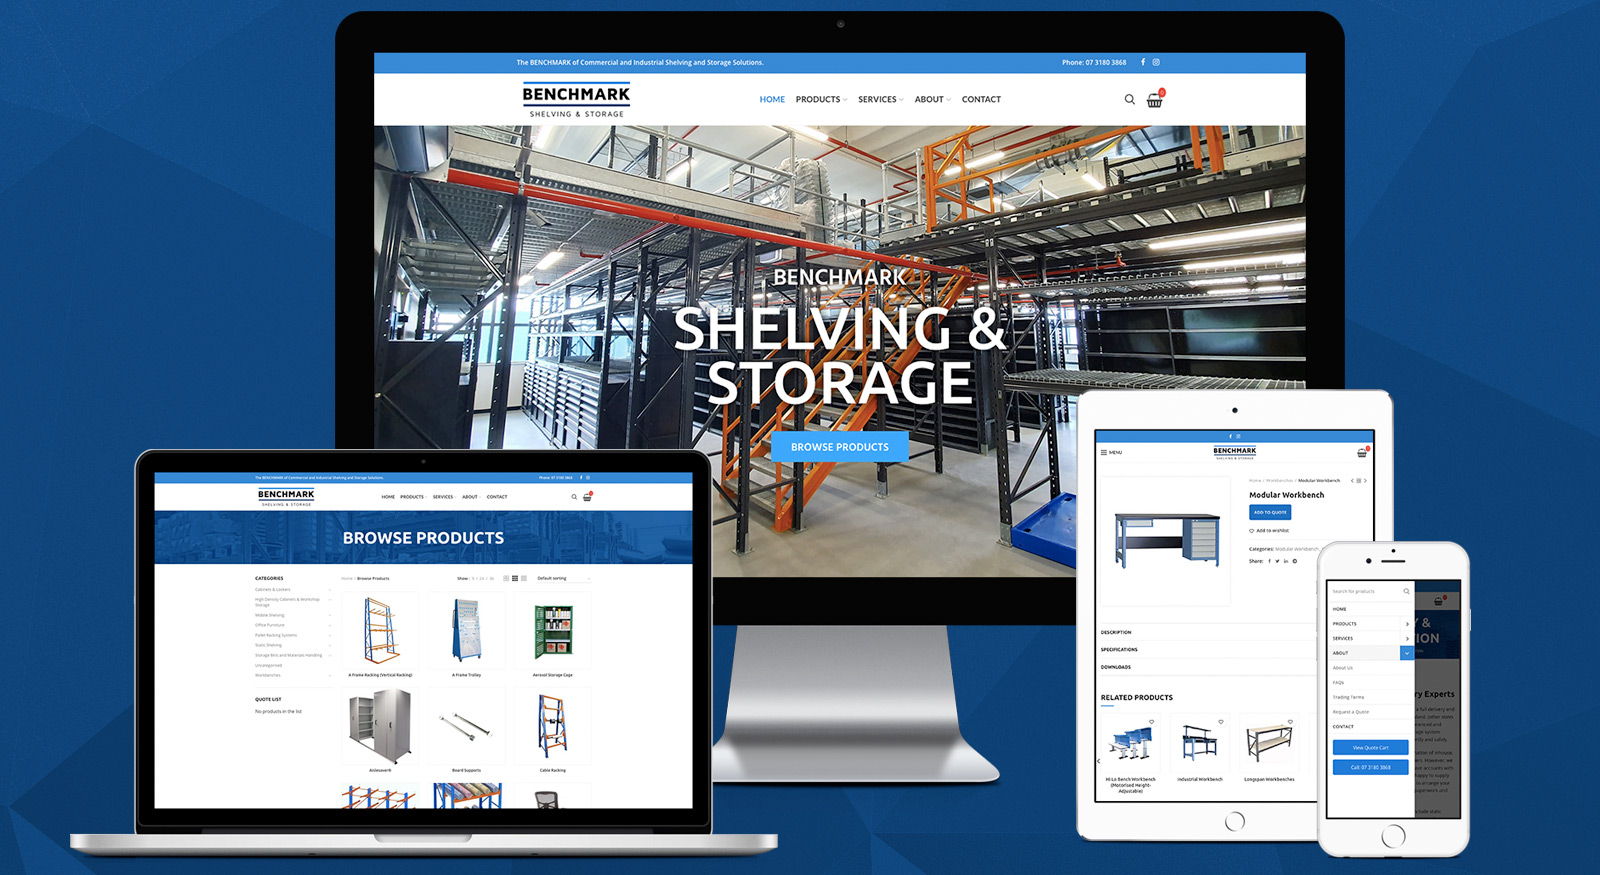 benchmark-shelving-storage-website-design-brisbane-onepoint